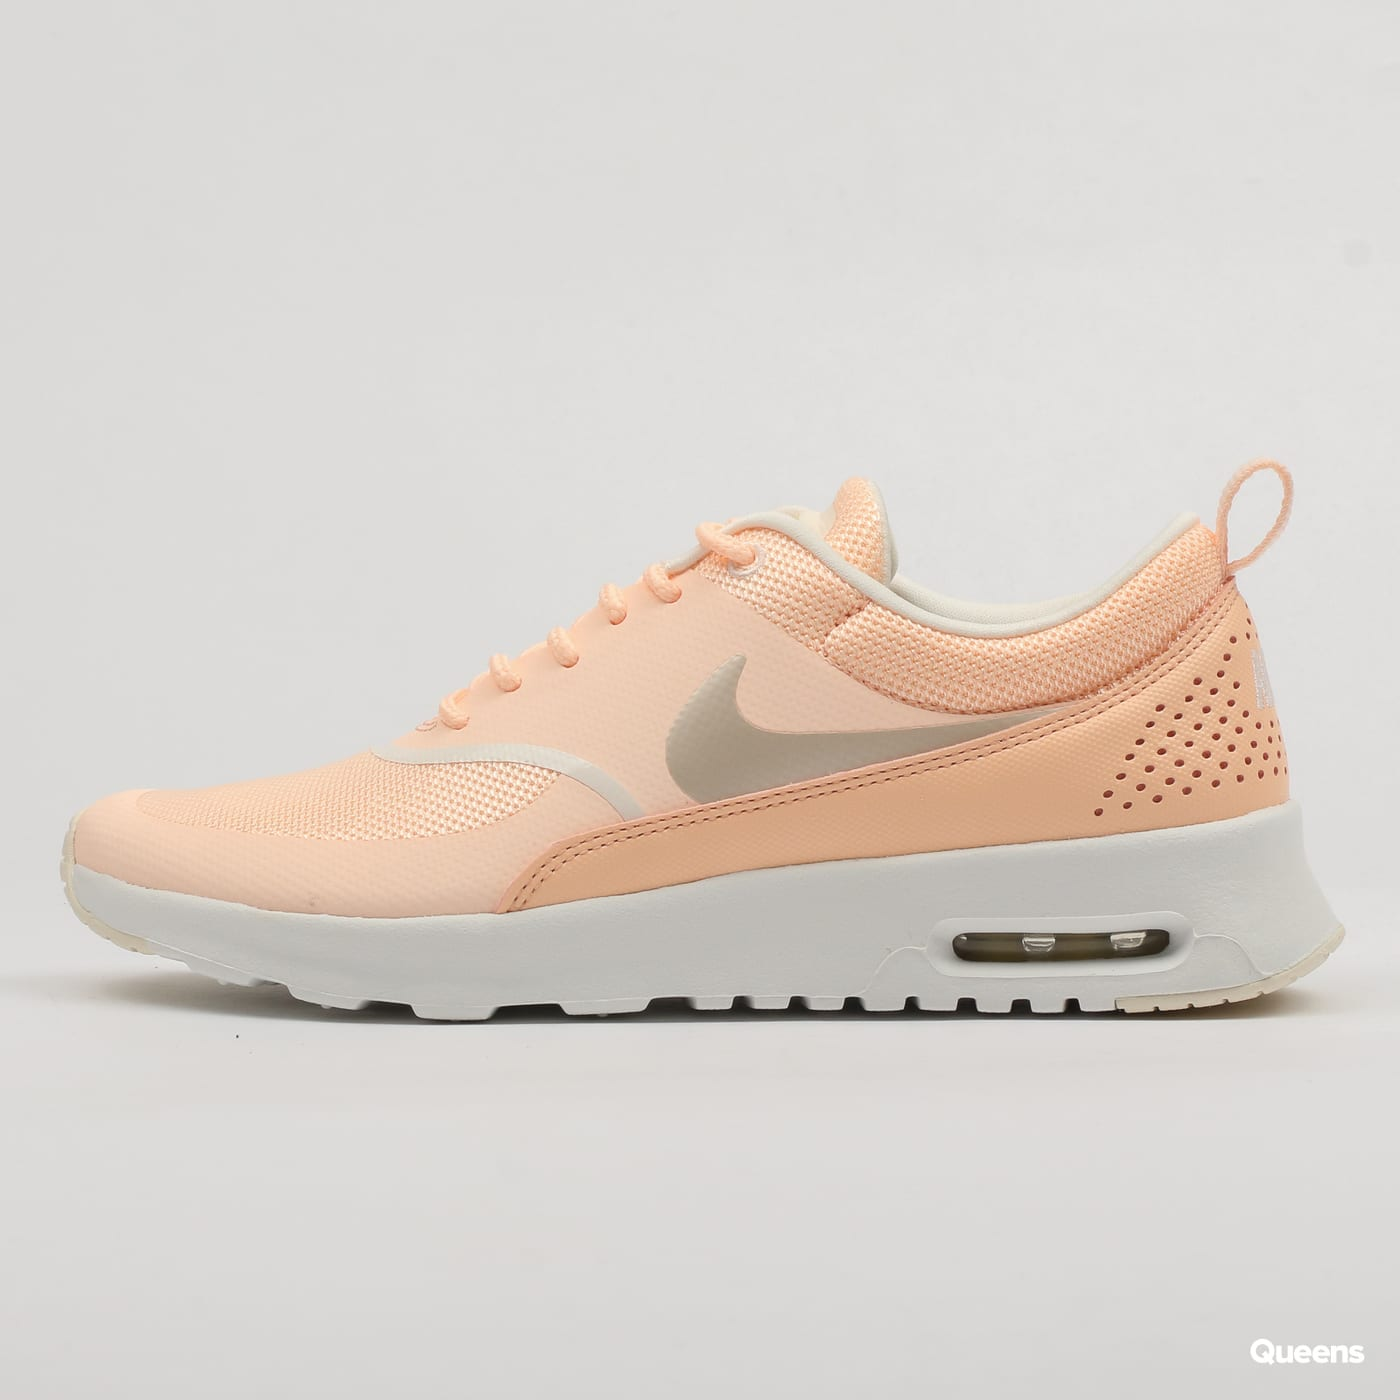 pick up separation shoes amazing selection Nike WMNS Air Max Thea crimson tint / pale ivory - celery